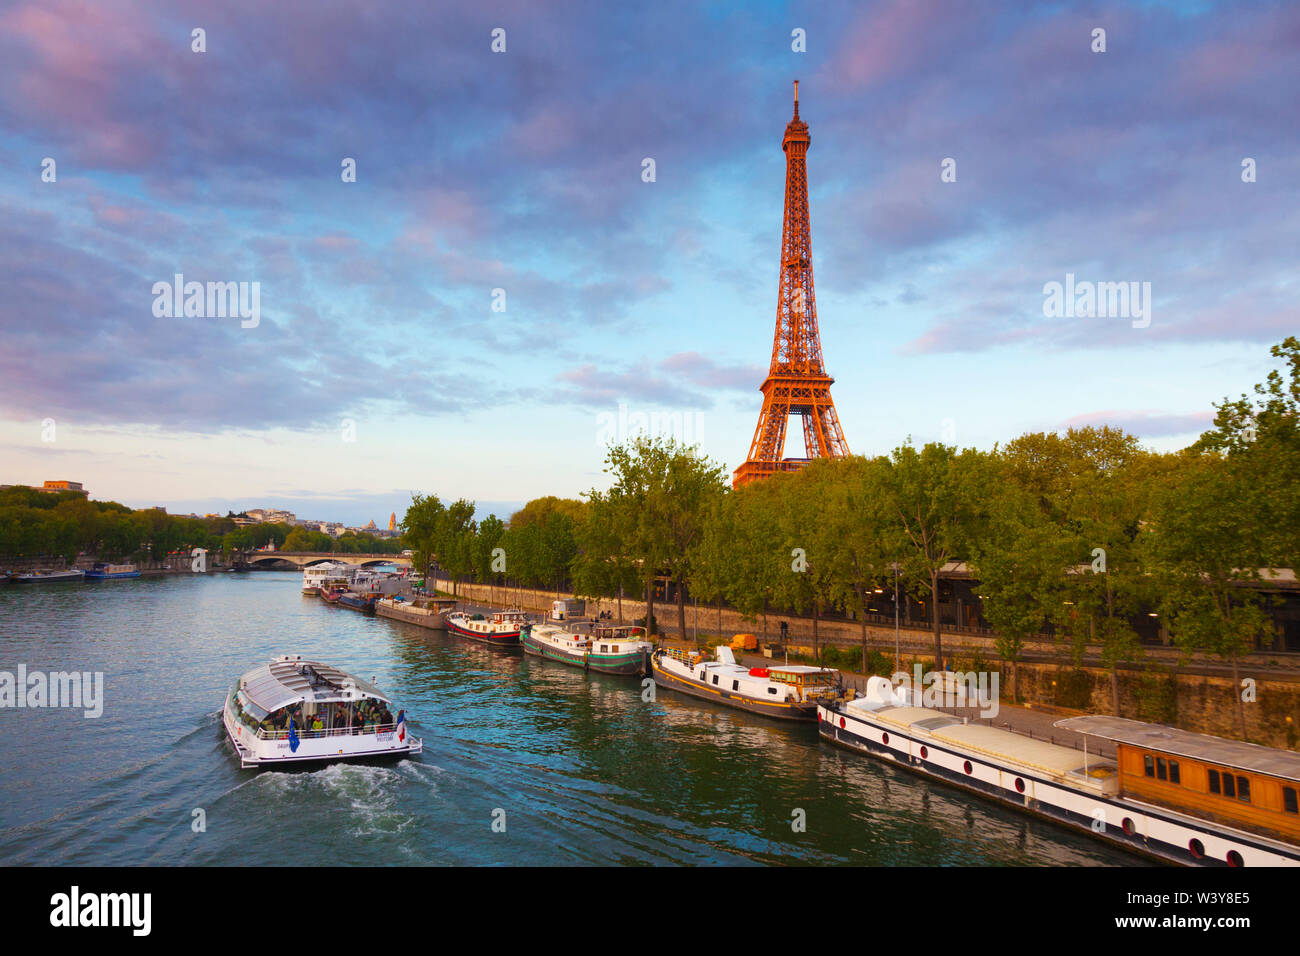 France, Paris, Eiffel Tower and tourist boat on River Seine - Stock Image